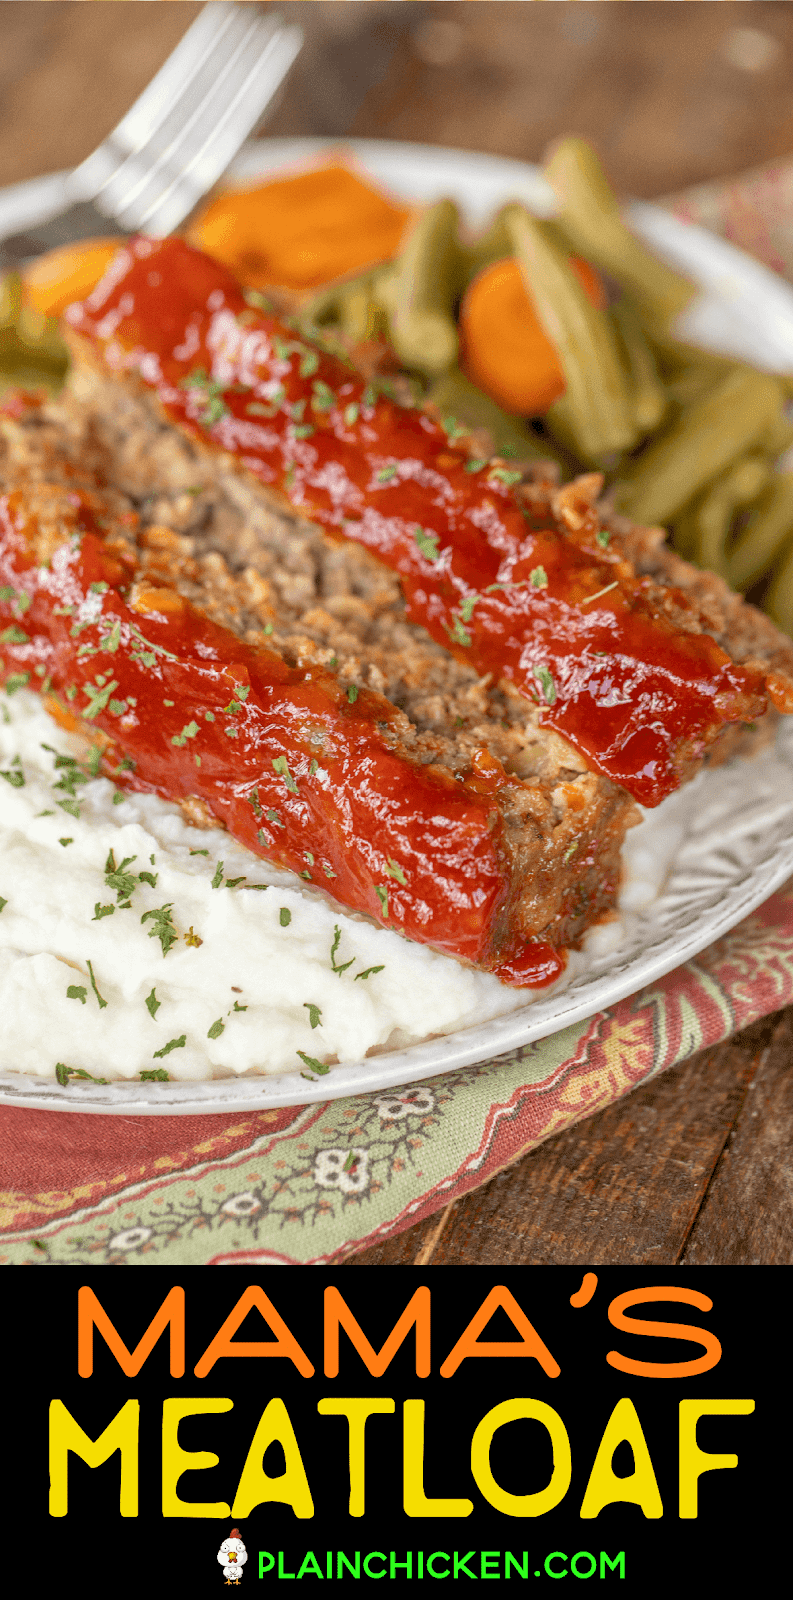 meatloaf and mashed potatoes on a plate